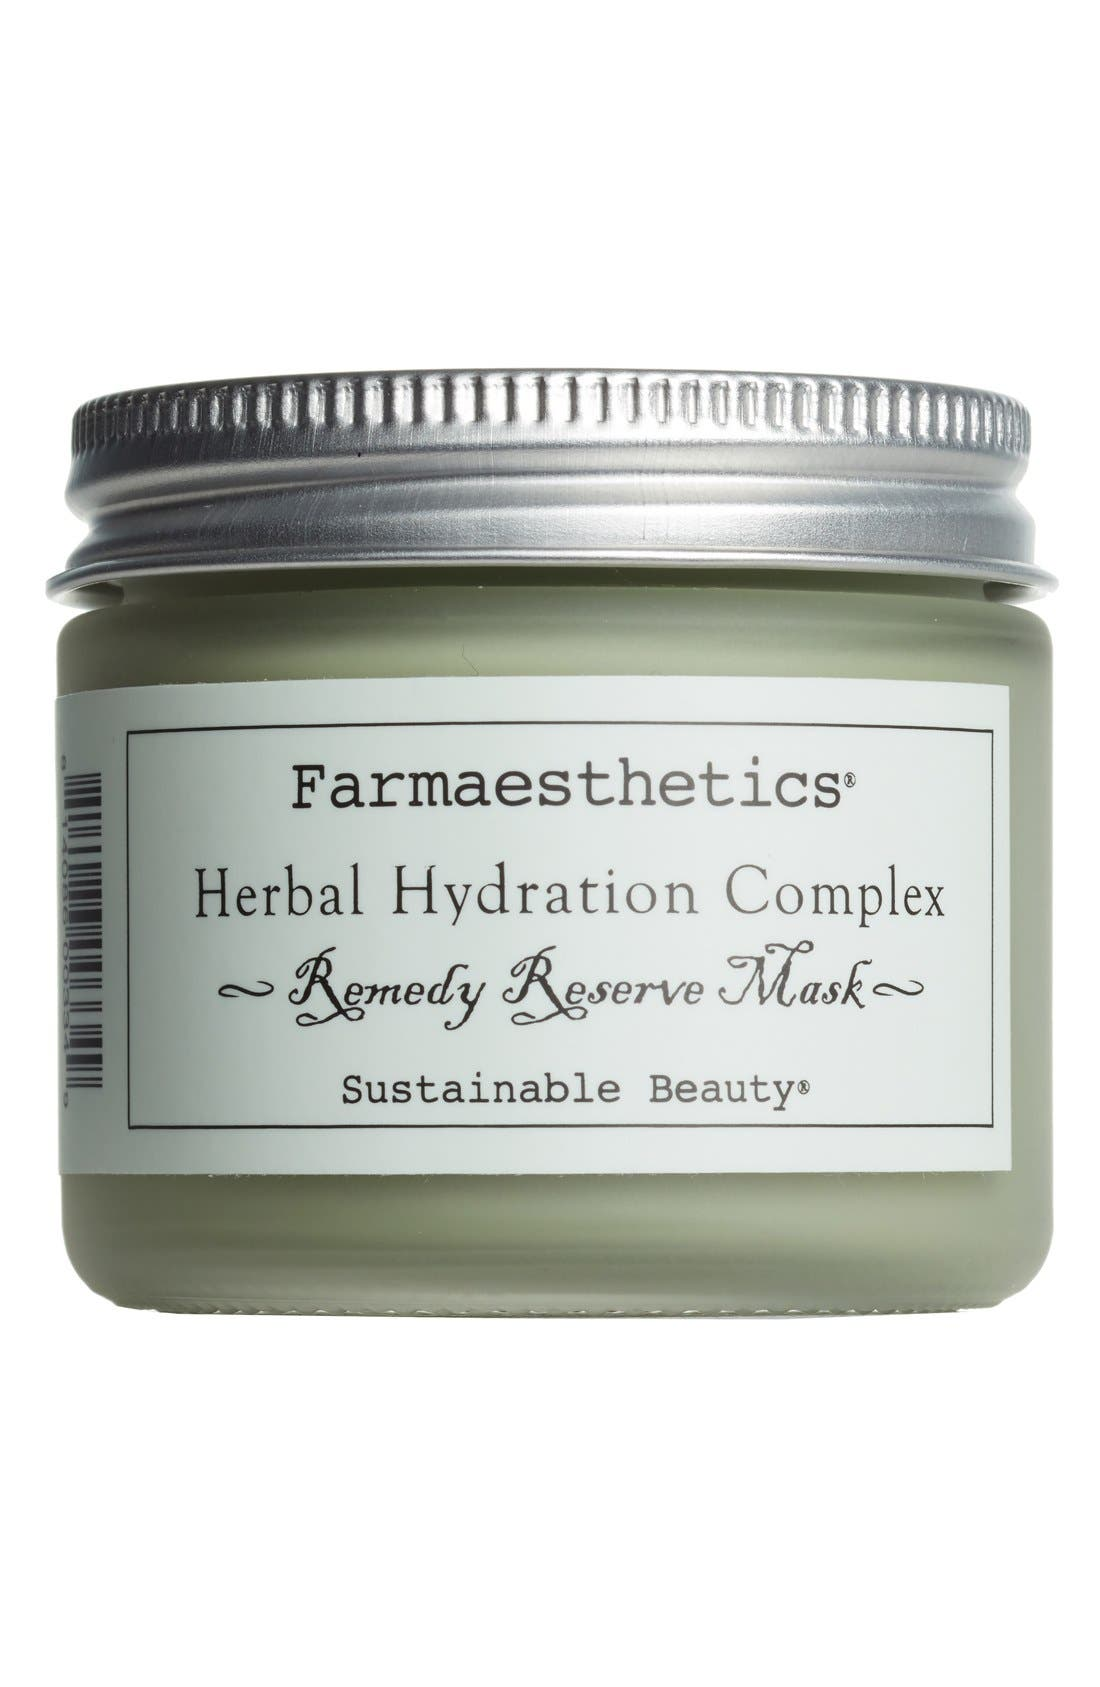 Farmaesthetics Herbal Hydration Complexion